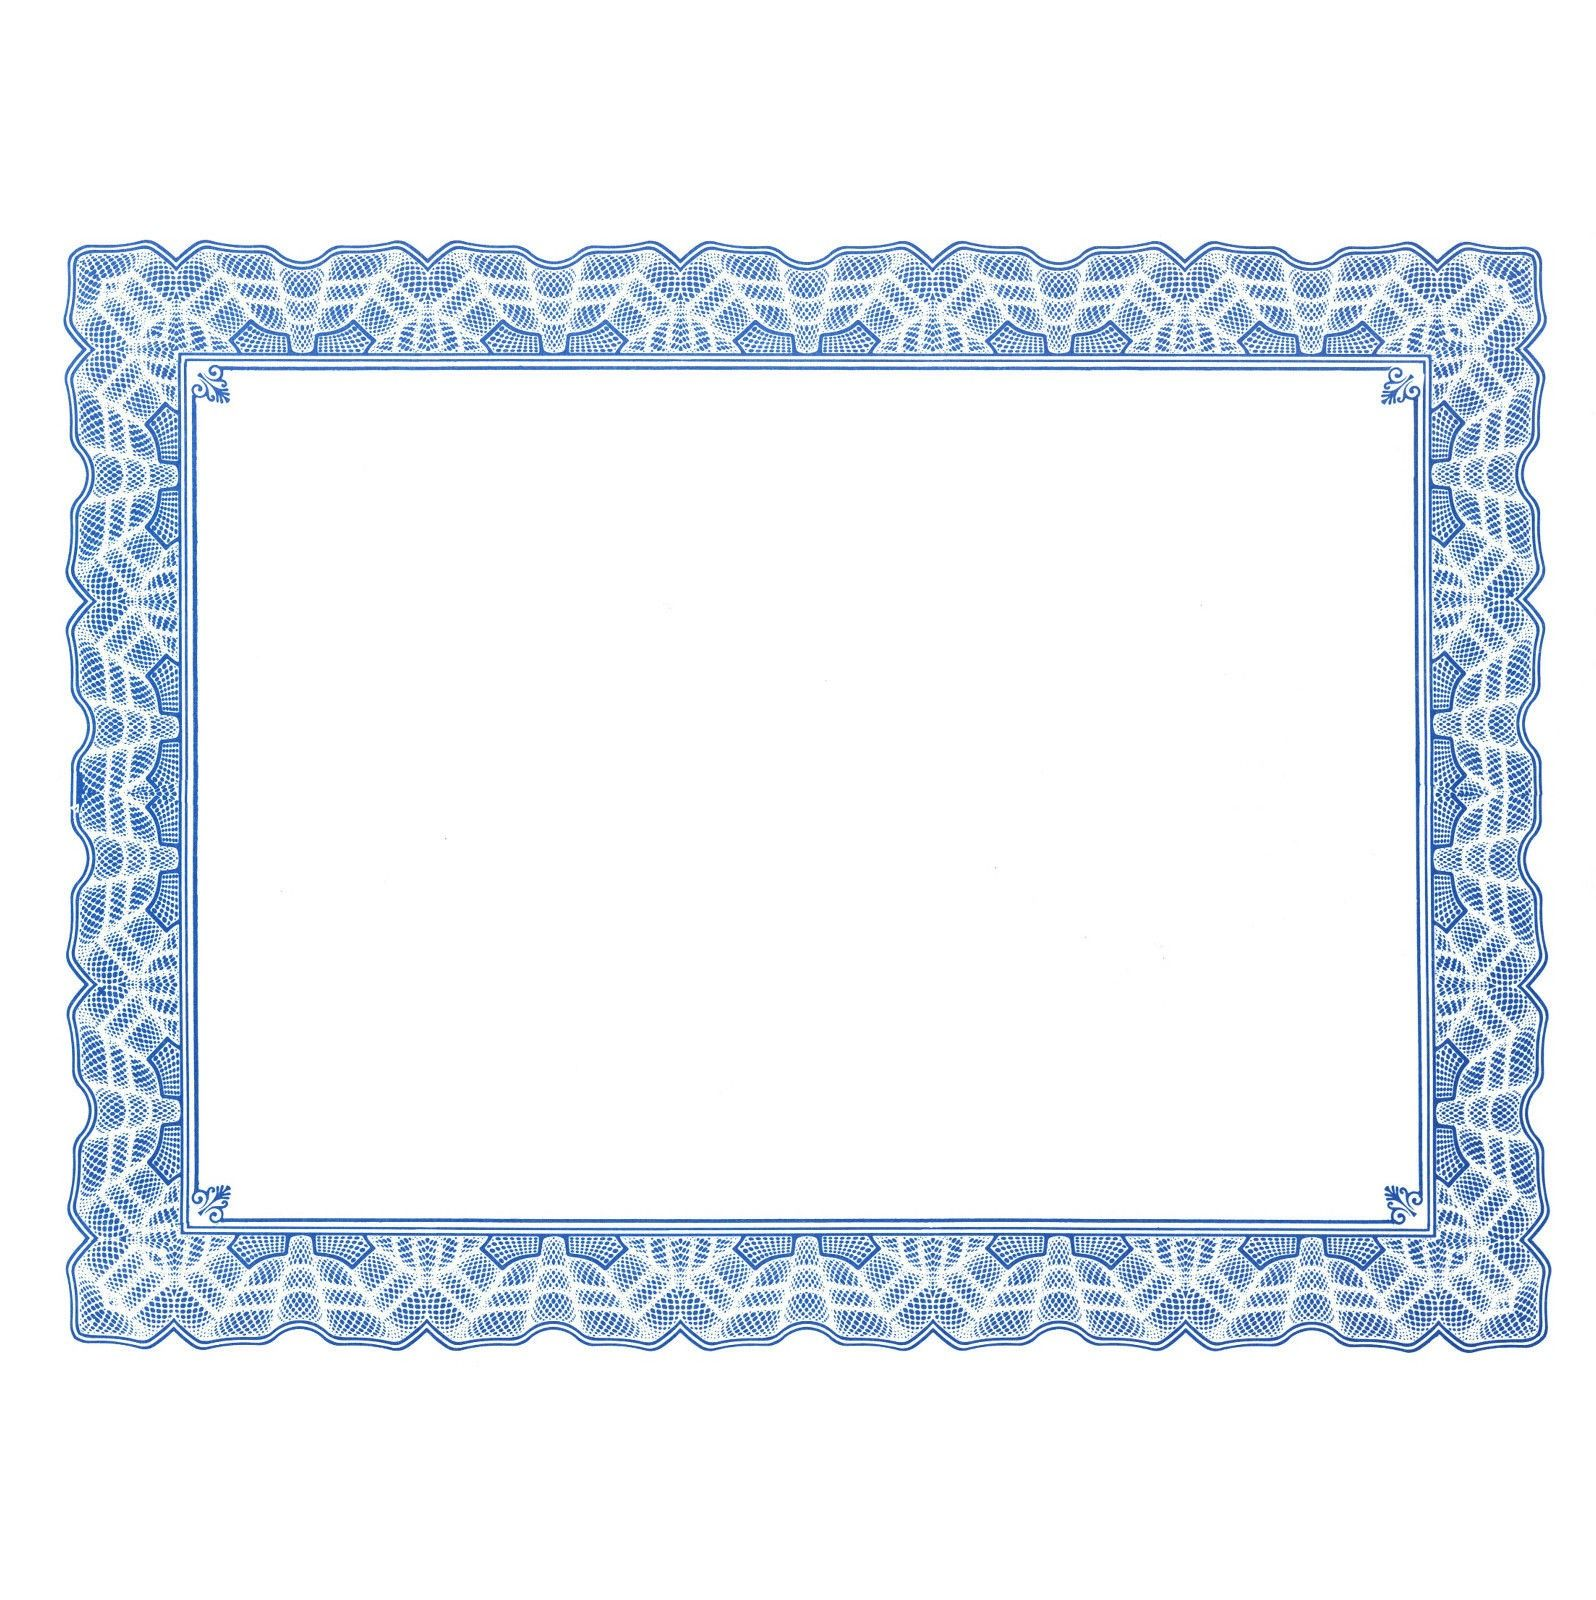 free certificate border templates for word besttemplates123 - Certificate Border Design Templates